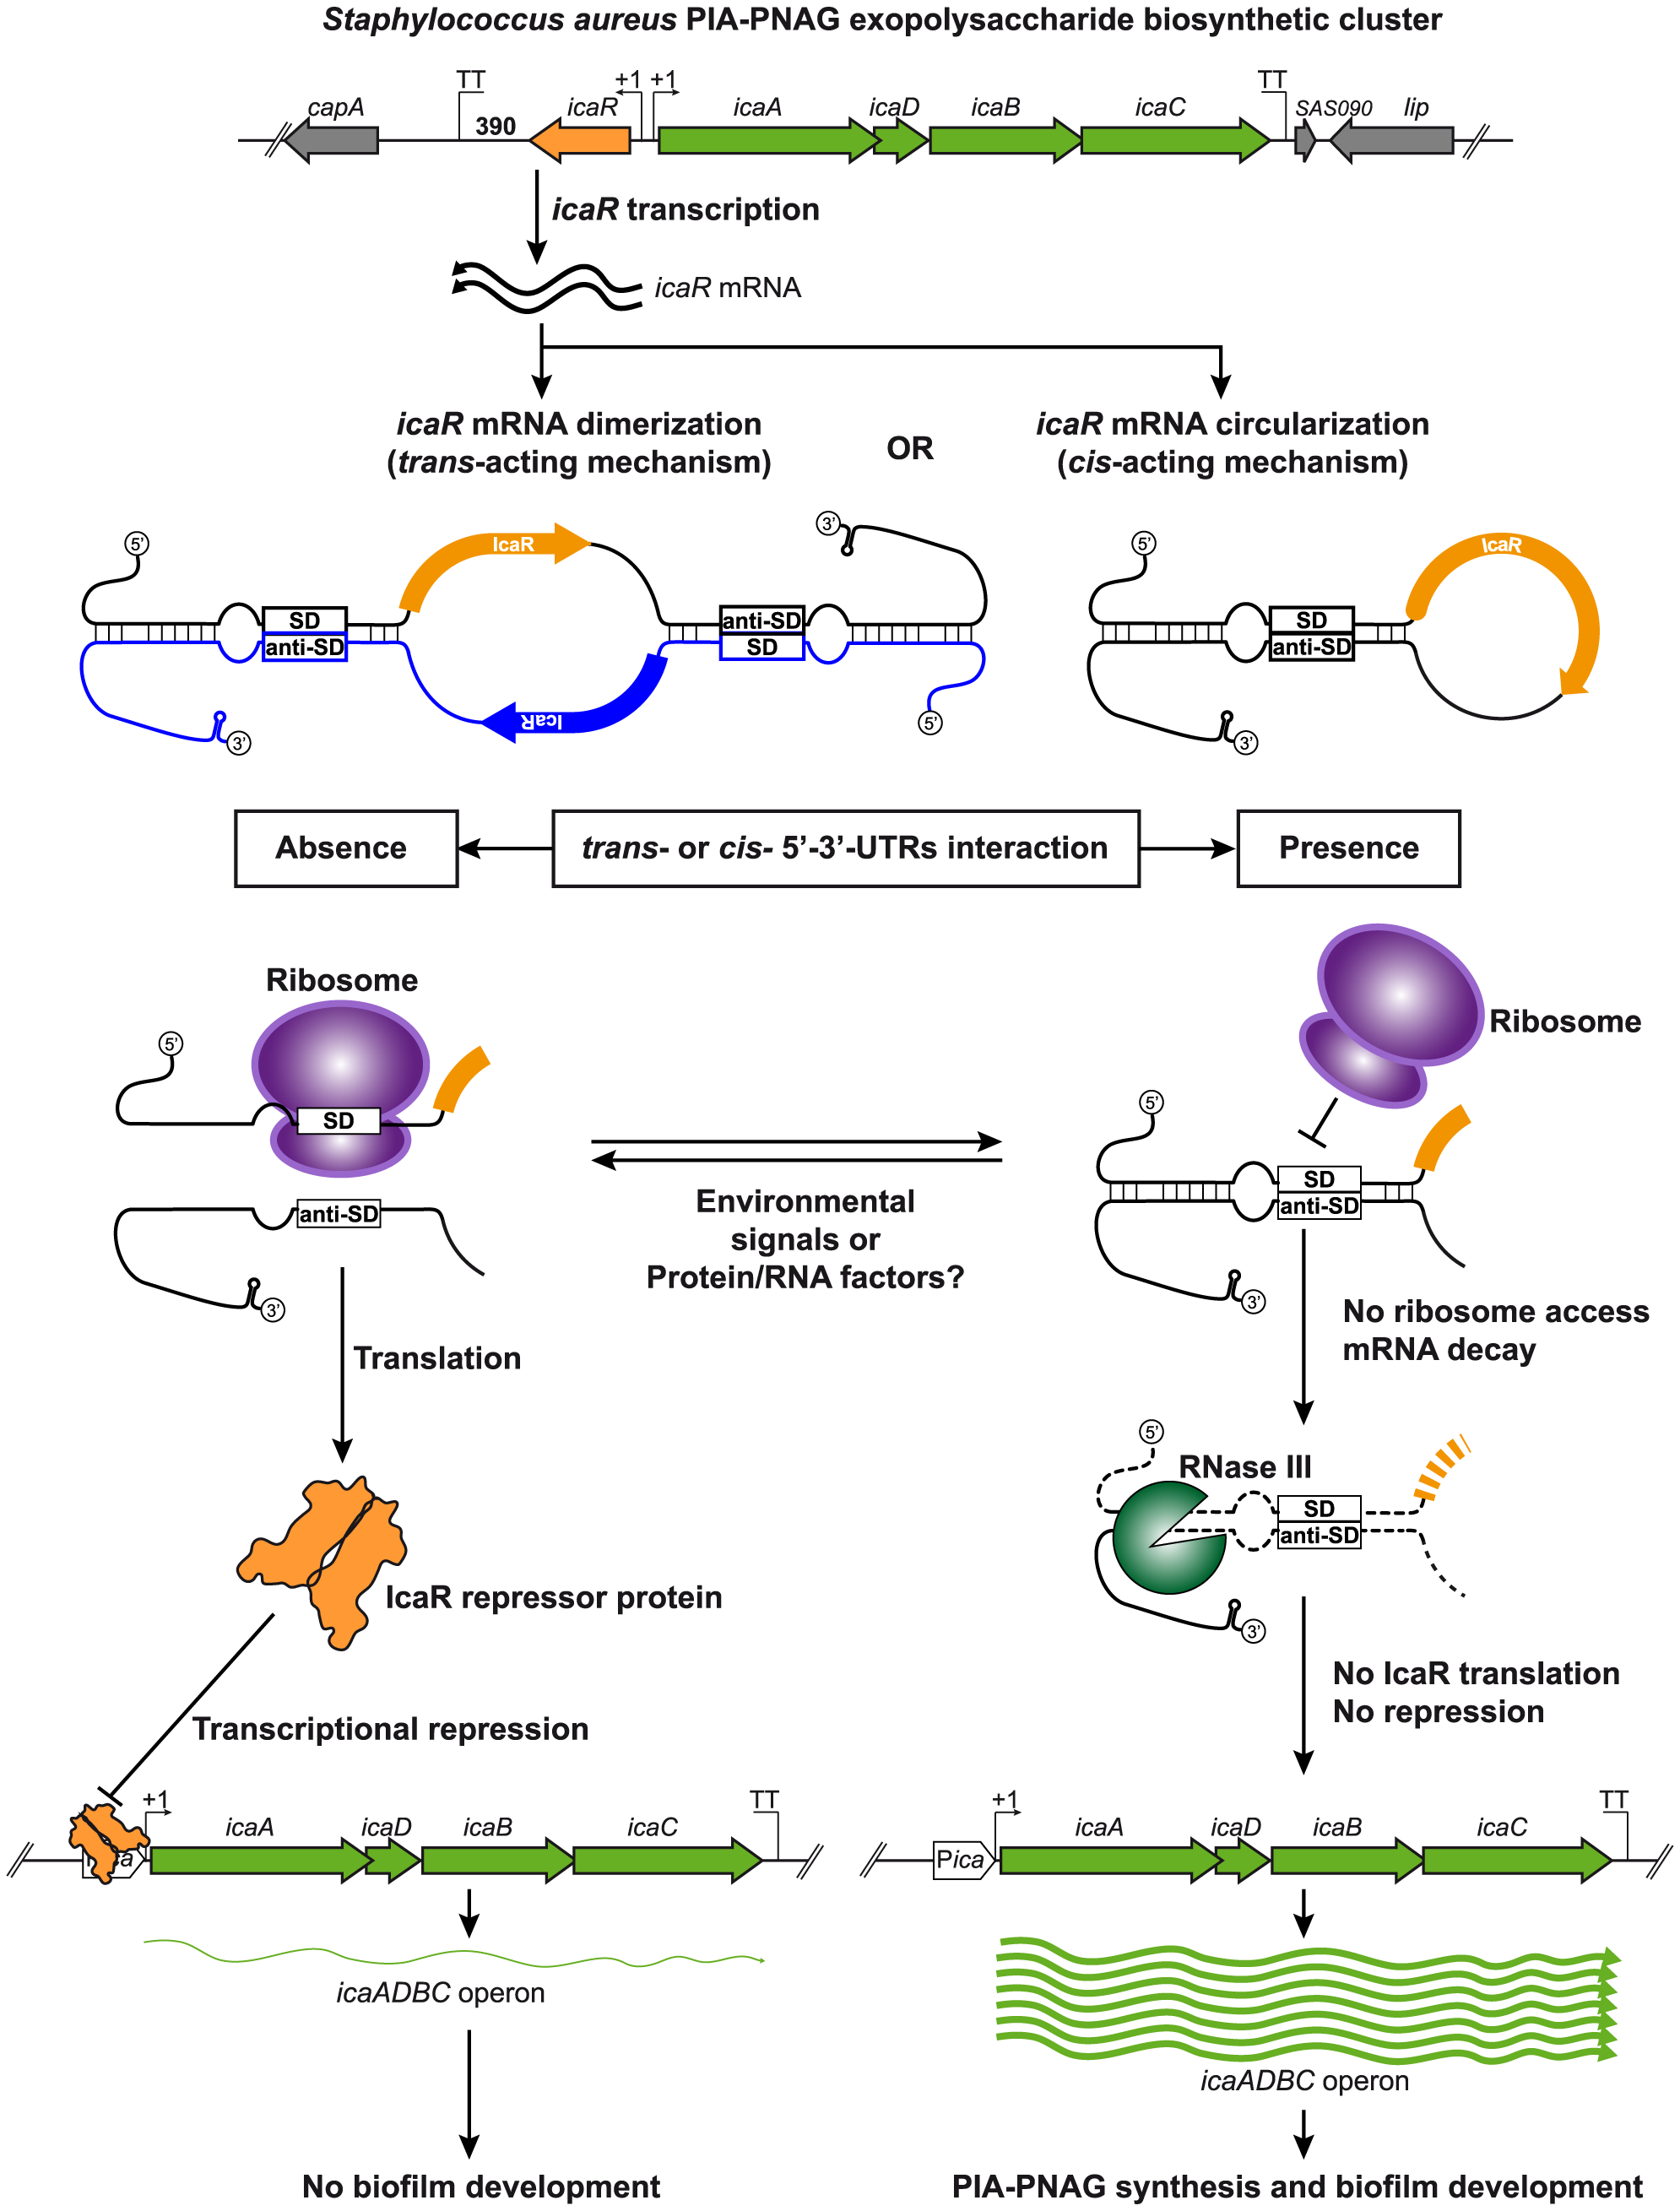 Modulation of IcaR expression by 5′-3′-UTRs interaction.